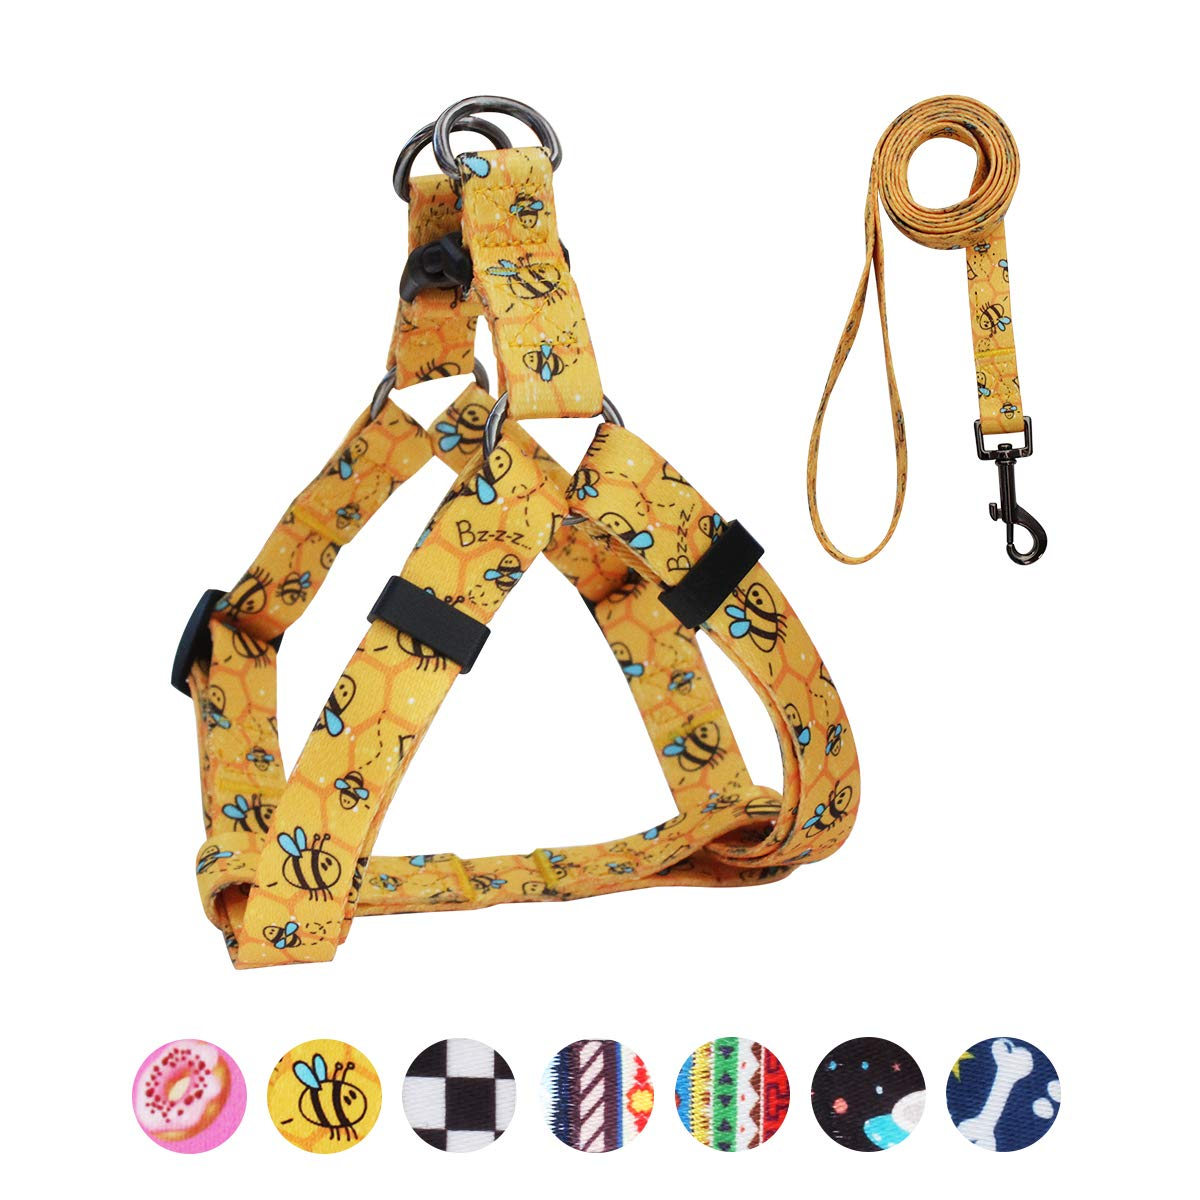 QQPETS Dog Harness Leash Set, Adjustable Heavy Duty No Pull Halter Harnesses for Large, Medium, Small Breed Dogs, Back Clip, Anti-Twist, Perfect for Walking (S(14''-20'' Chest Girth), Yellow Bee)